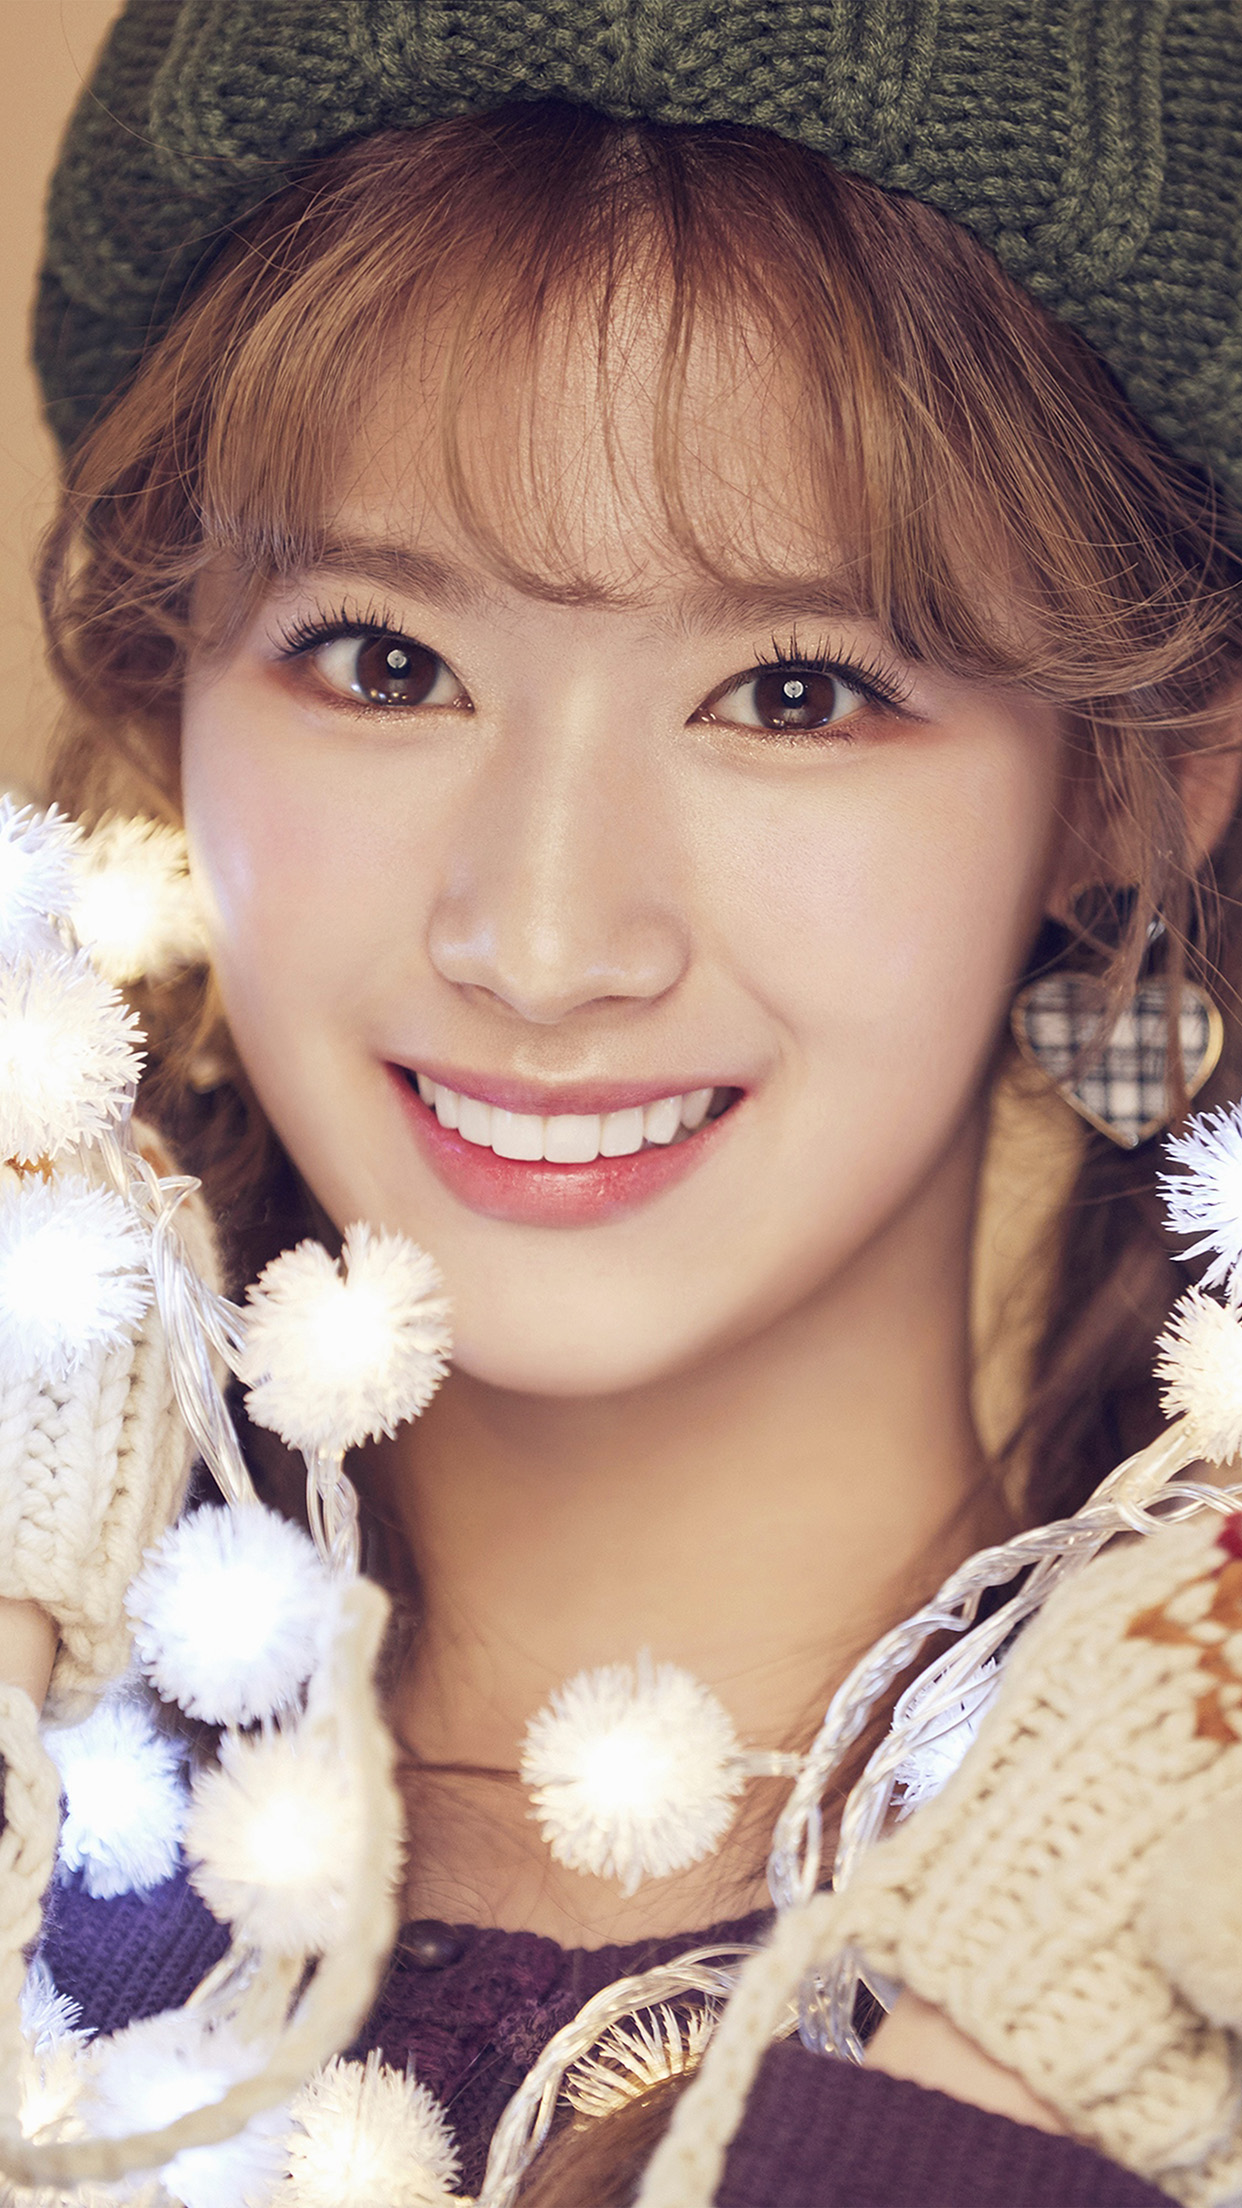 ho97-kpop-twice-sana-girl-asian-wallpaper